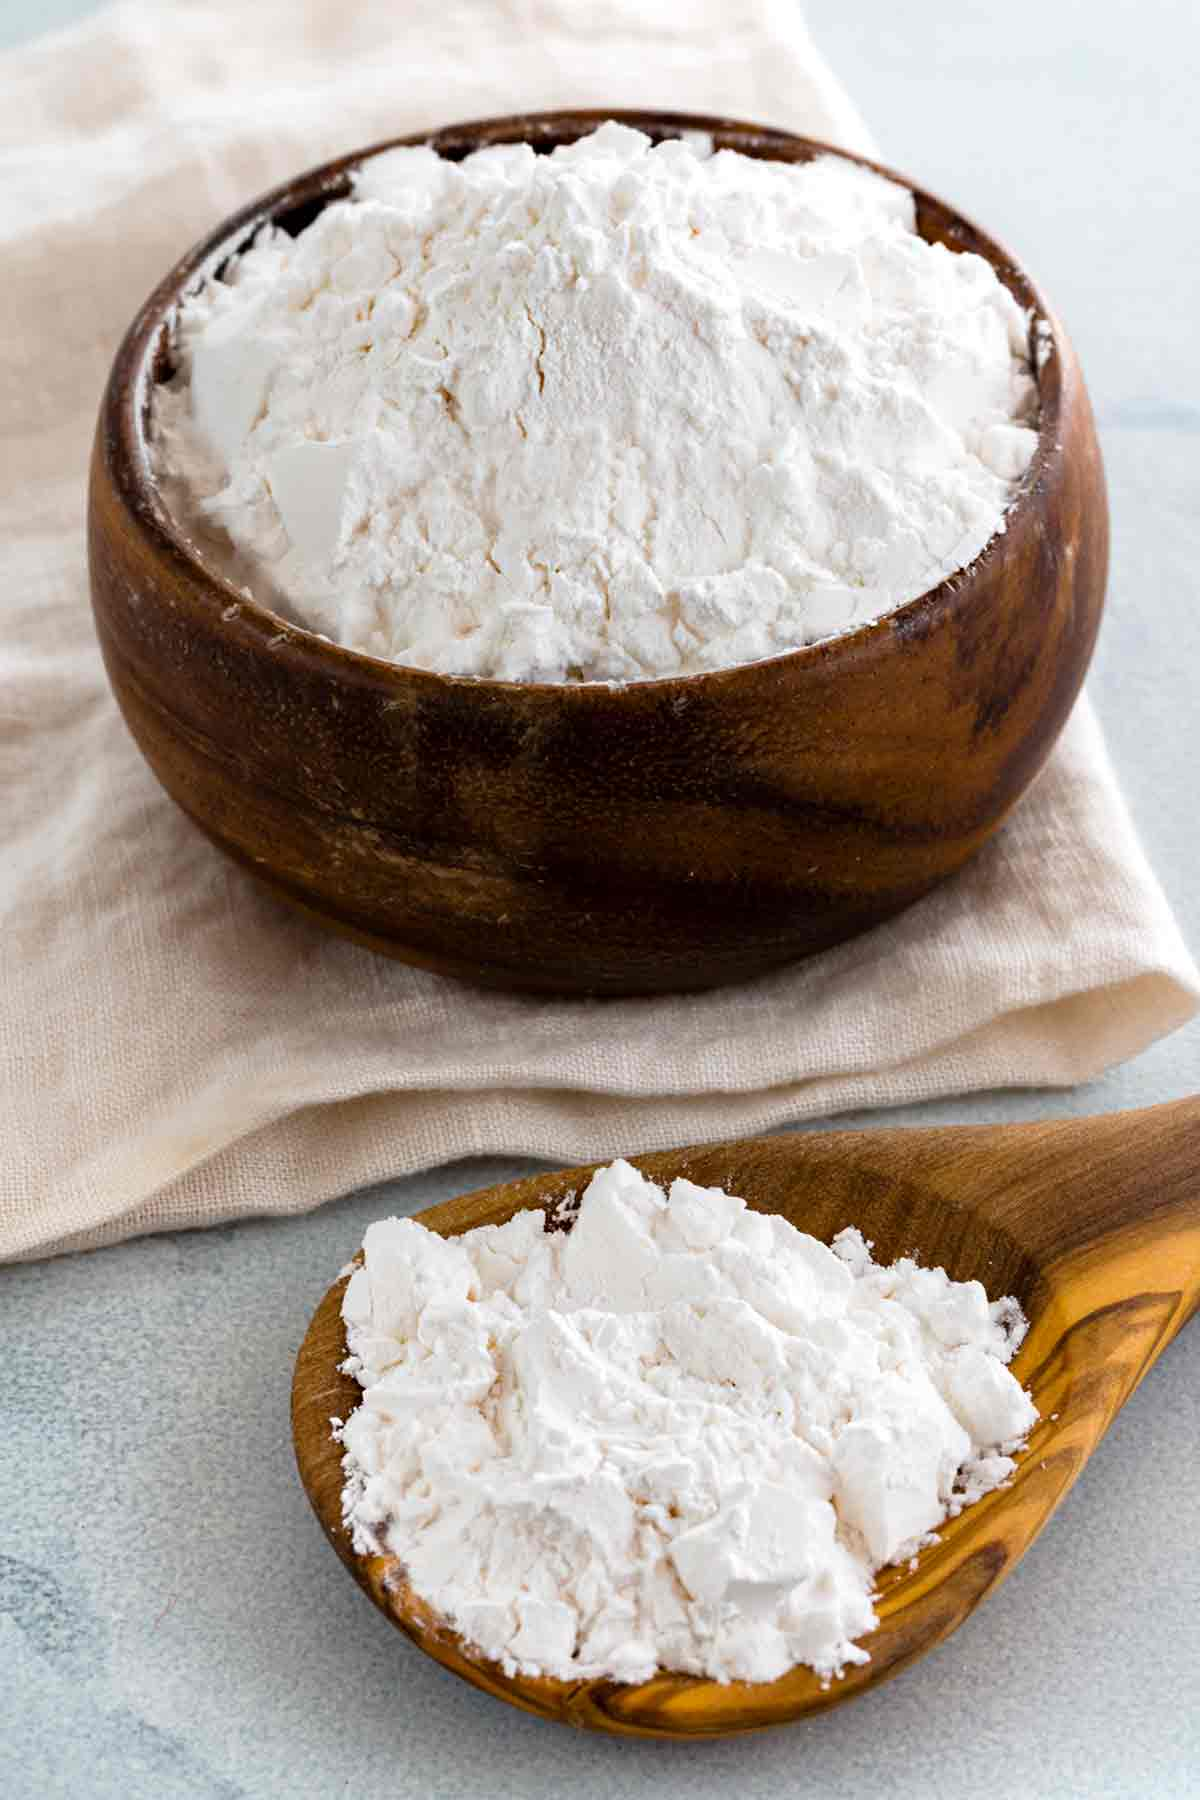 Arrowroot powder in a wooden jar and on a wooden spoon